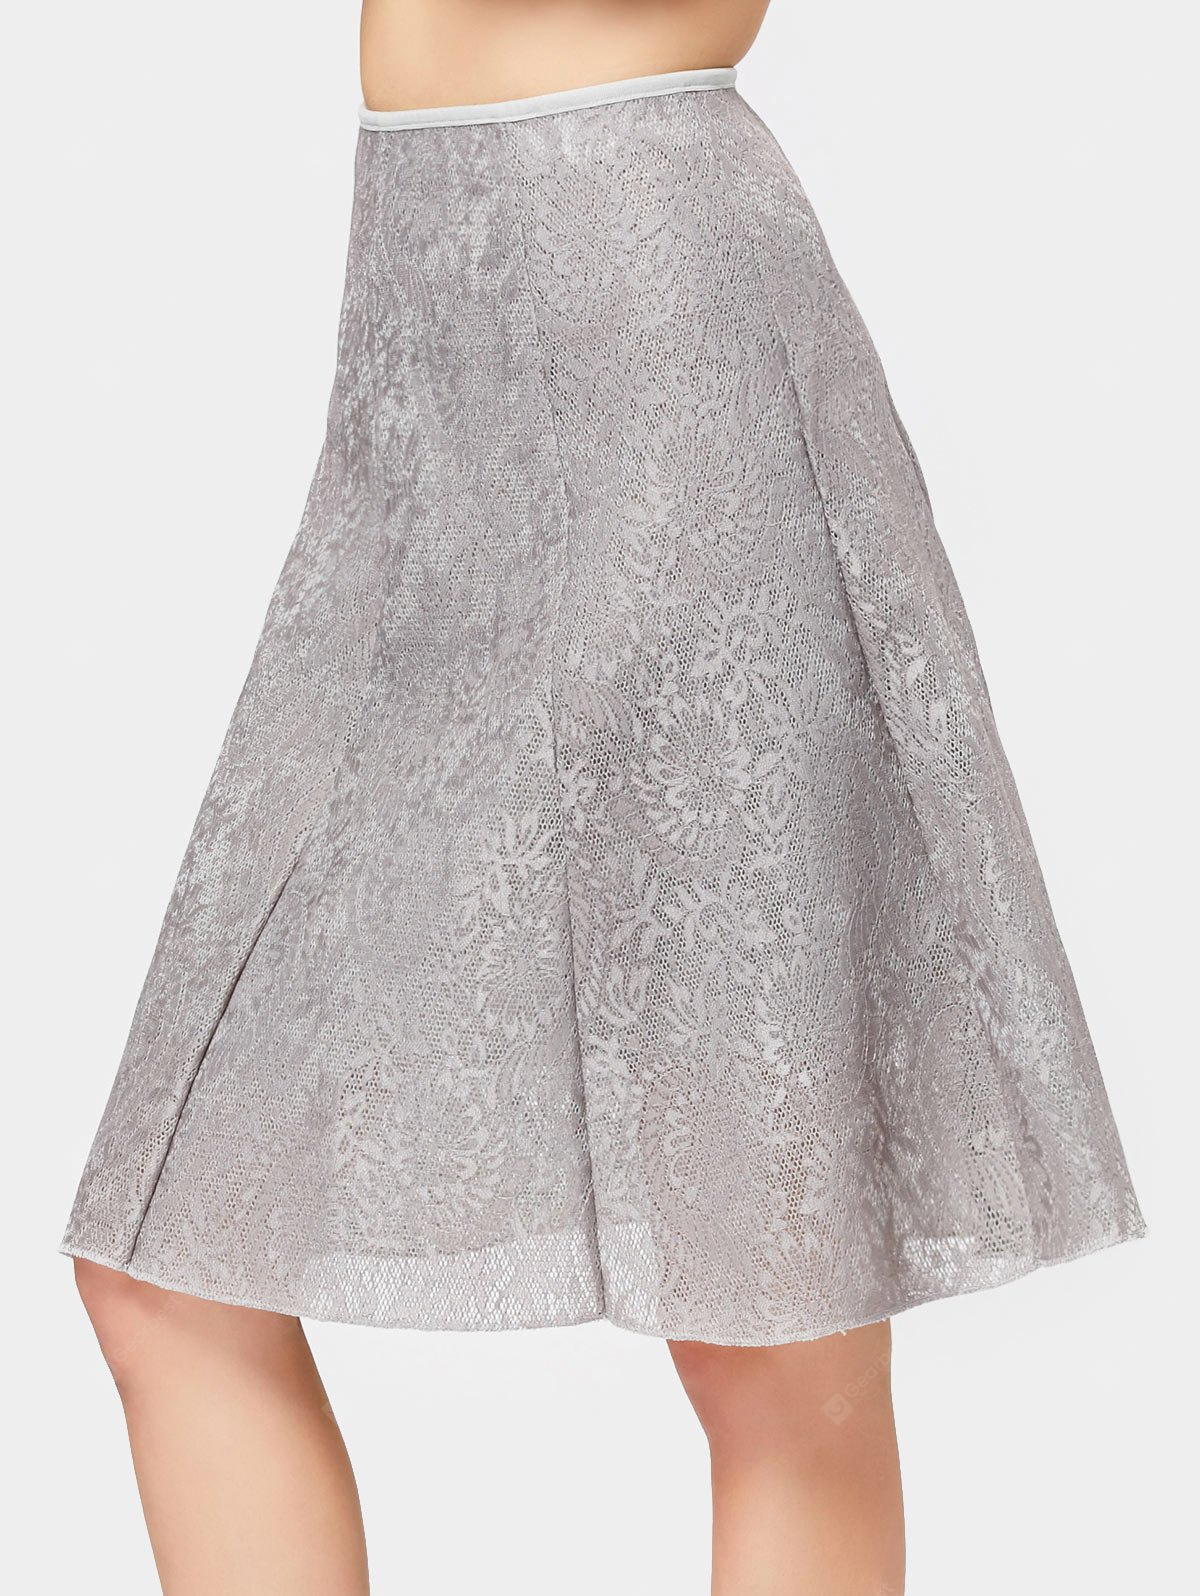 Lace Openwork Knee Length Skirt